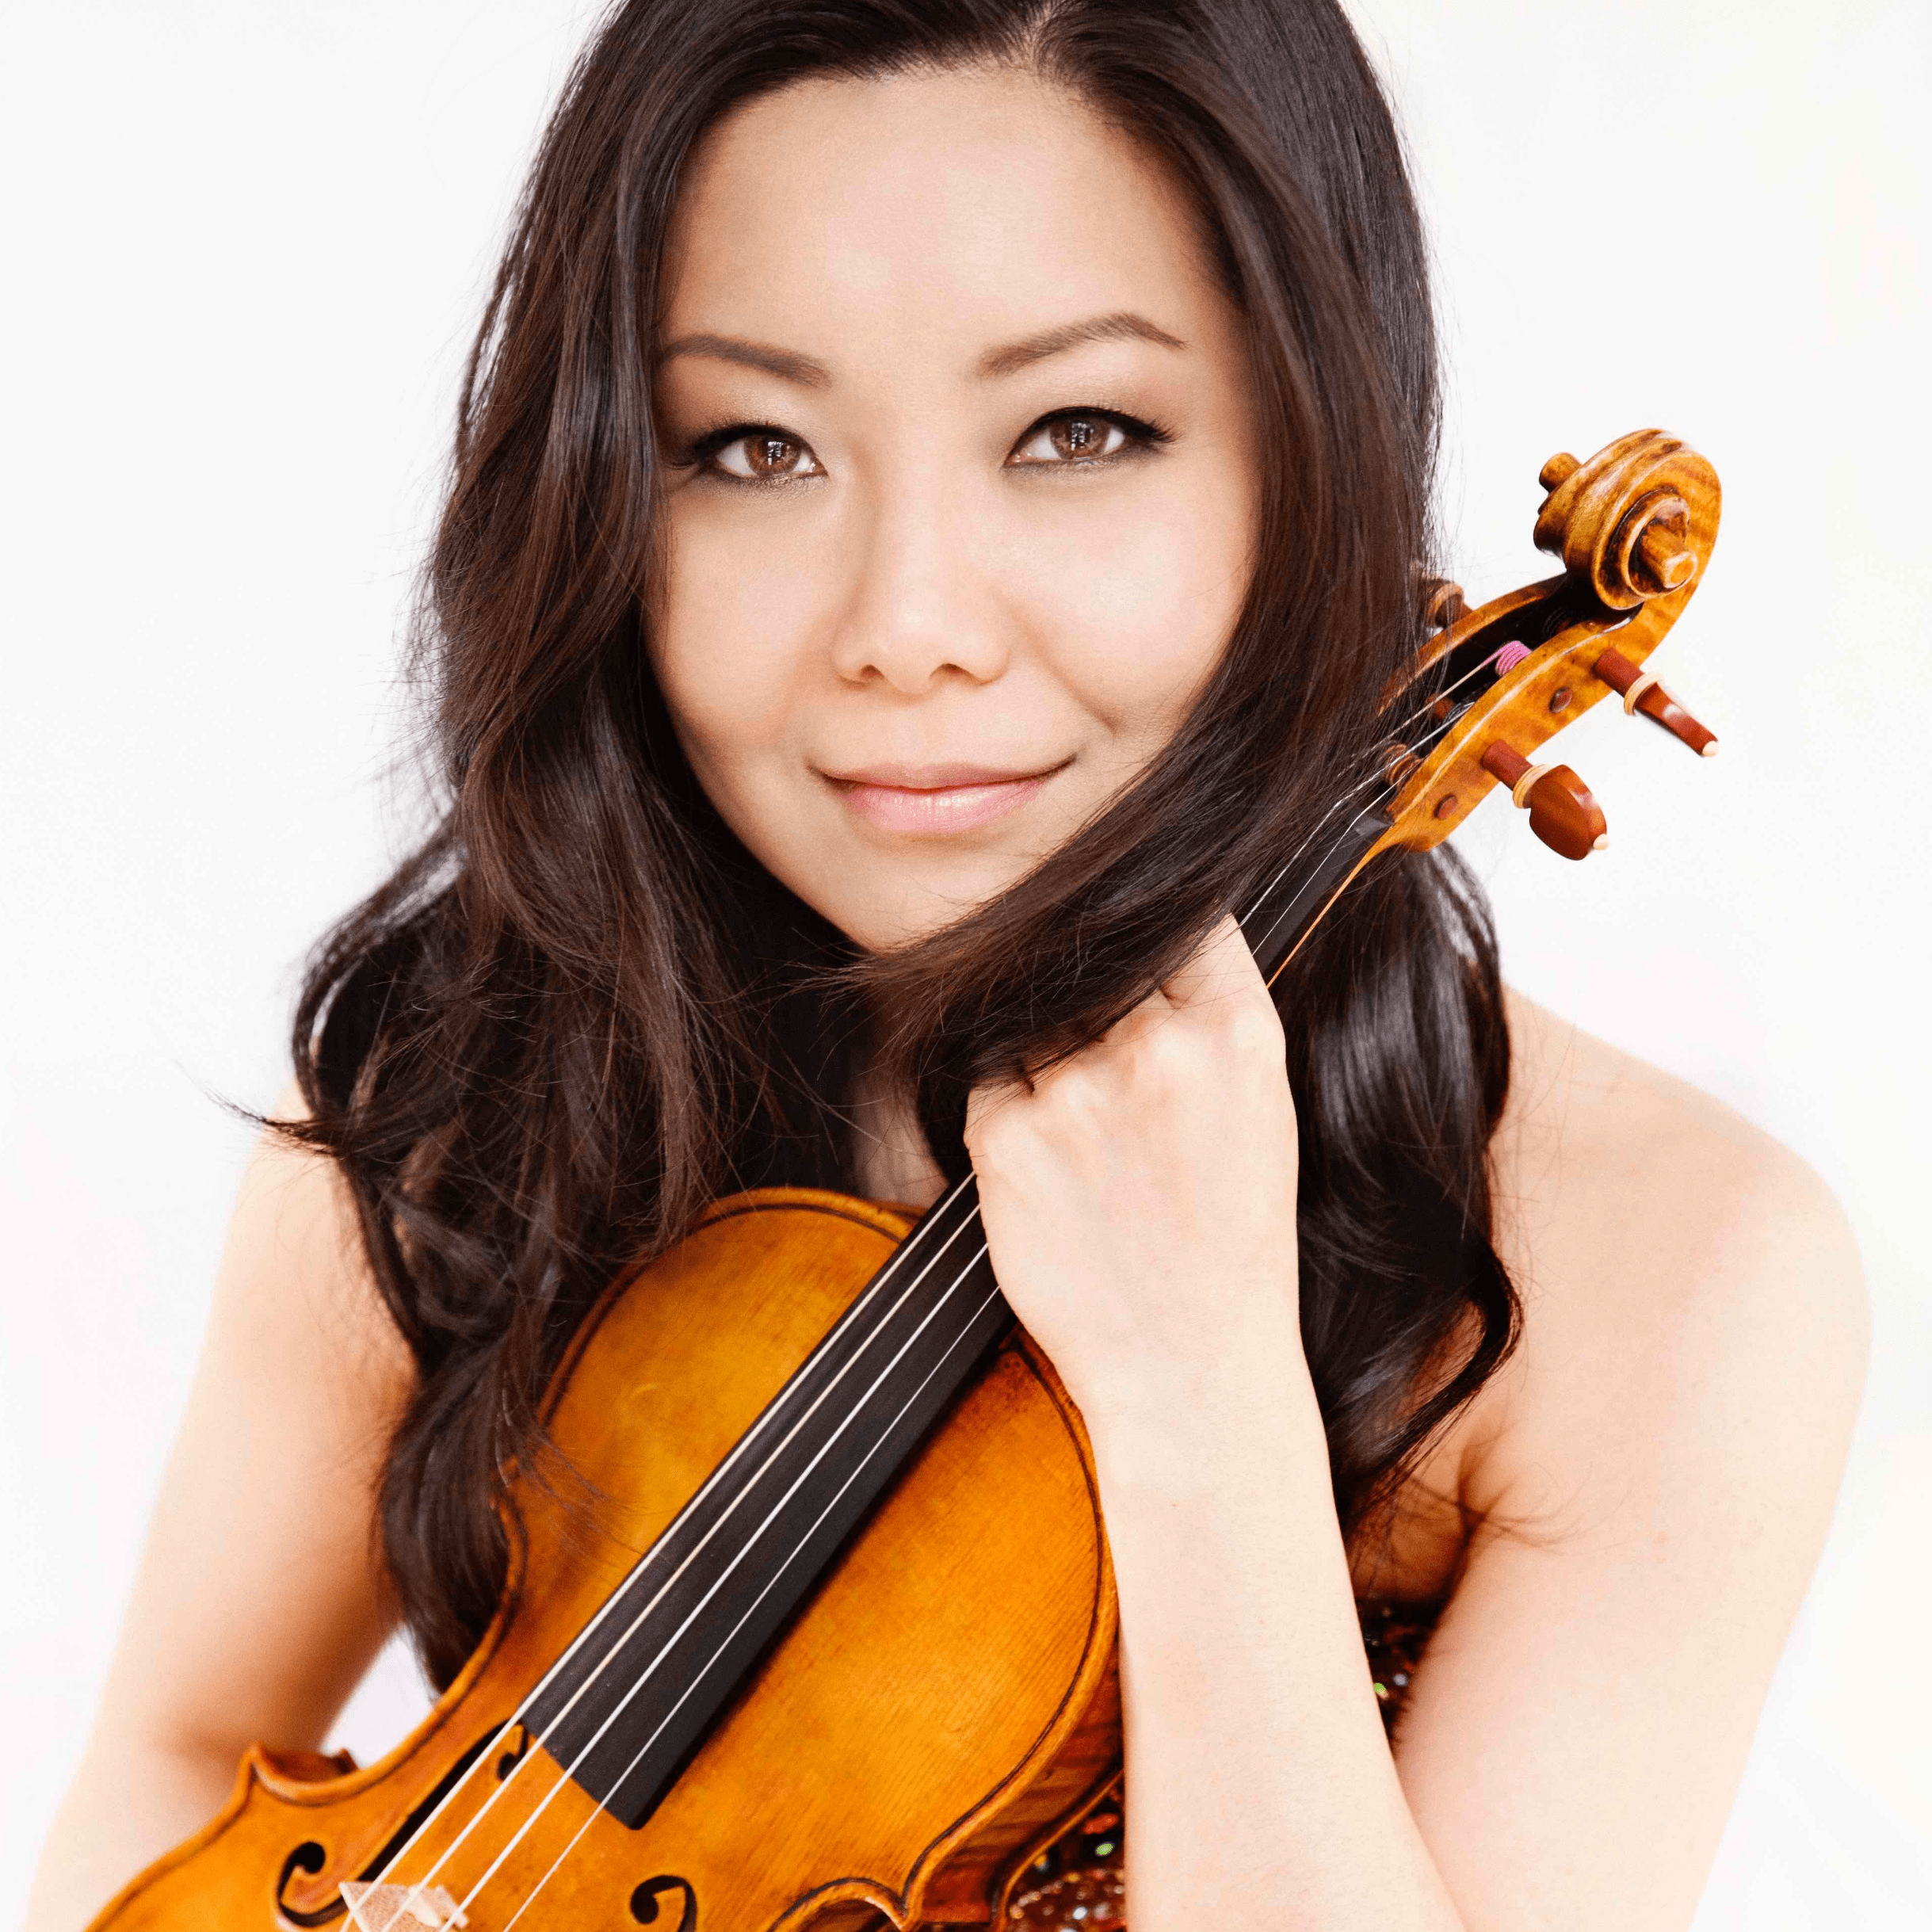 Female classical violinist Yi-Jia Susanne Hou on the Liam Pitcher website holding her violin.